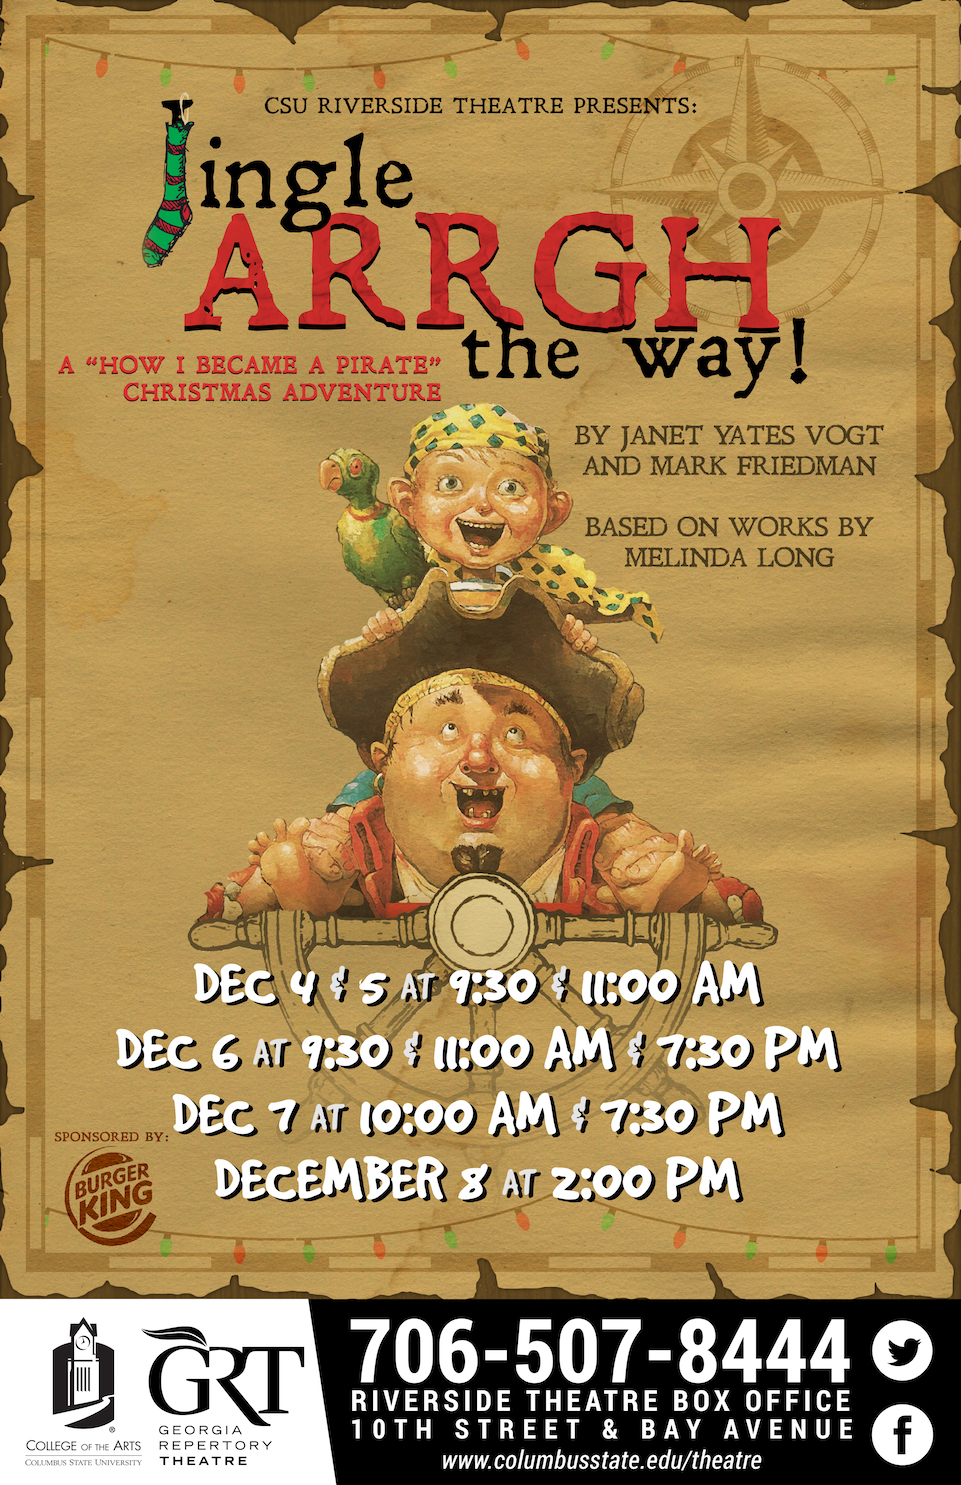 CSU Theatre: Jingle ARRGH the Way!